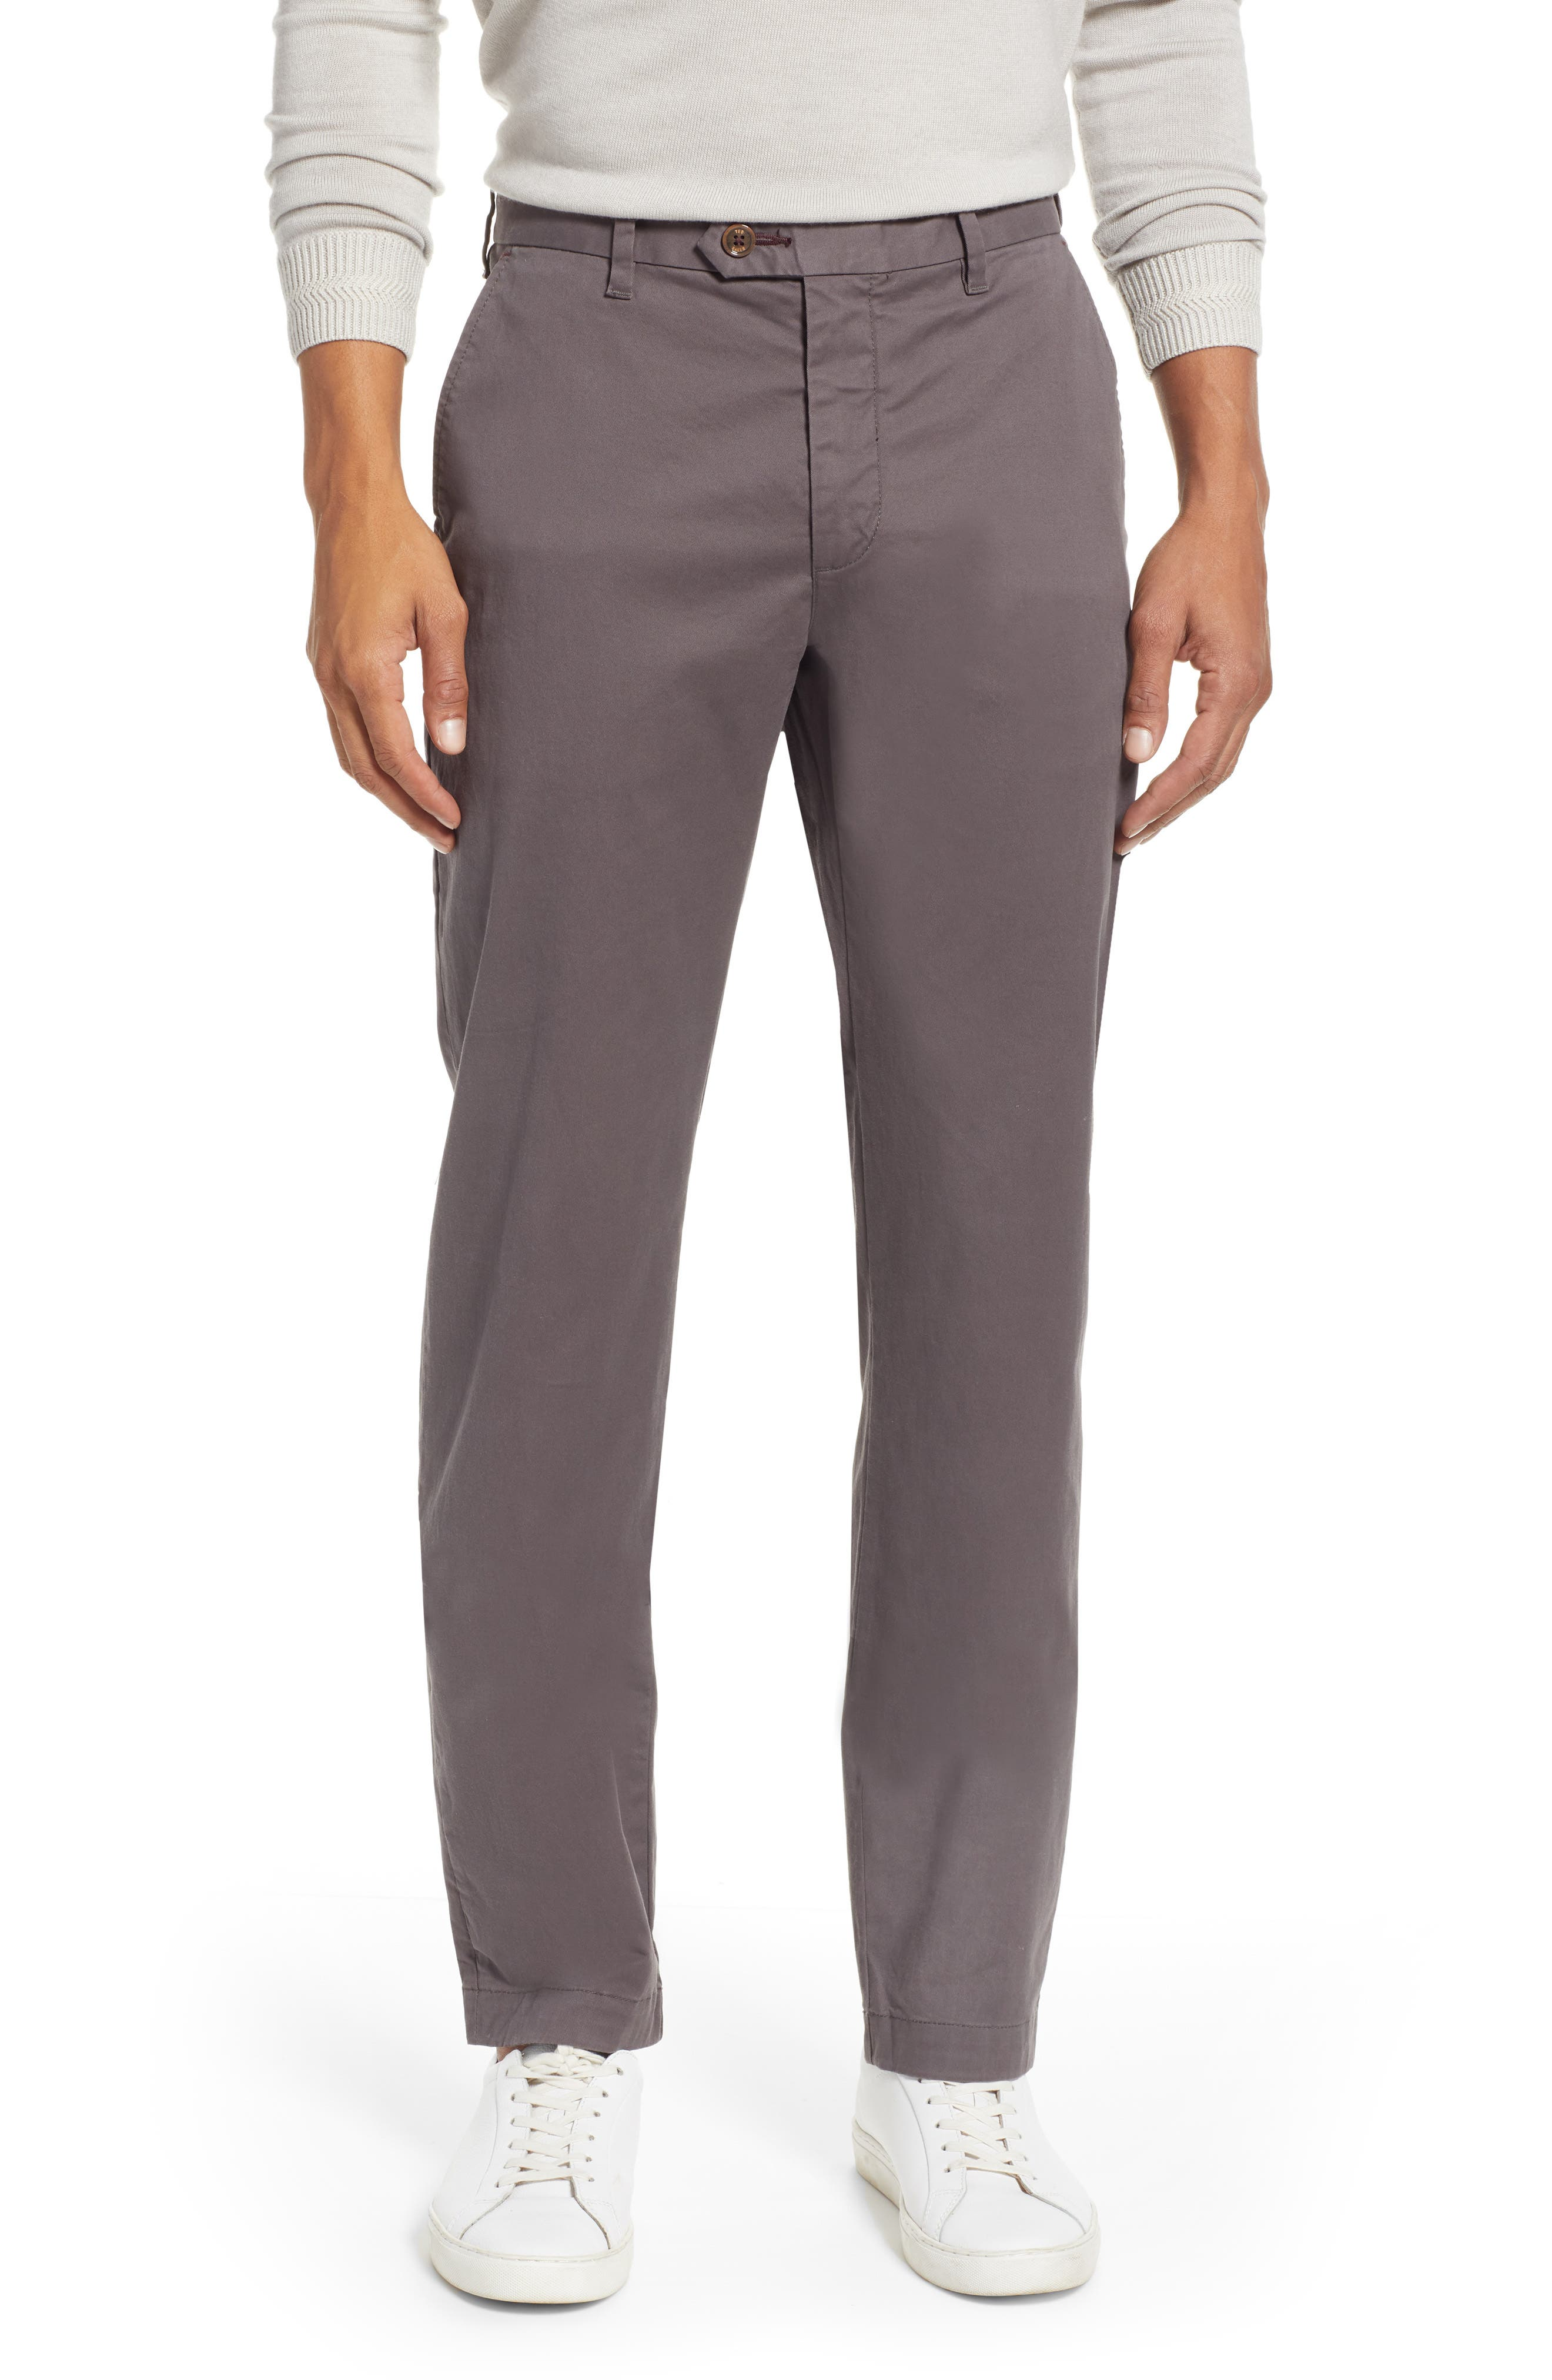 TED BAKER LONDON Selebtt Slim Fit Stretch Cotton Chinos, Main, color, 020